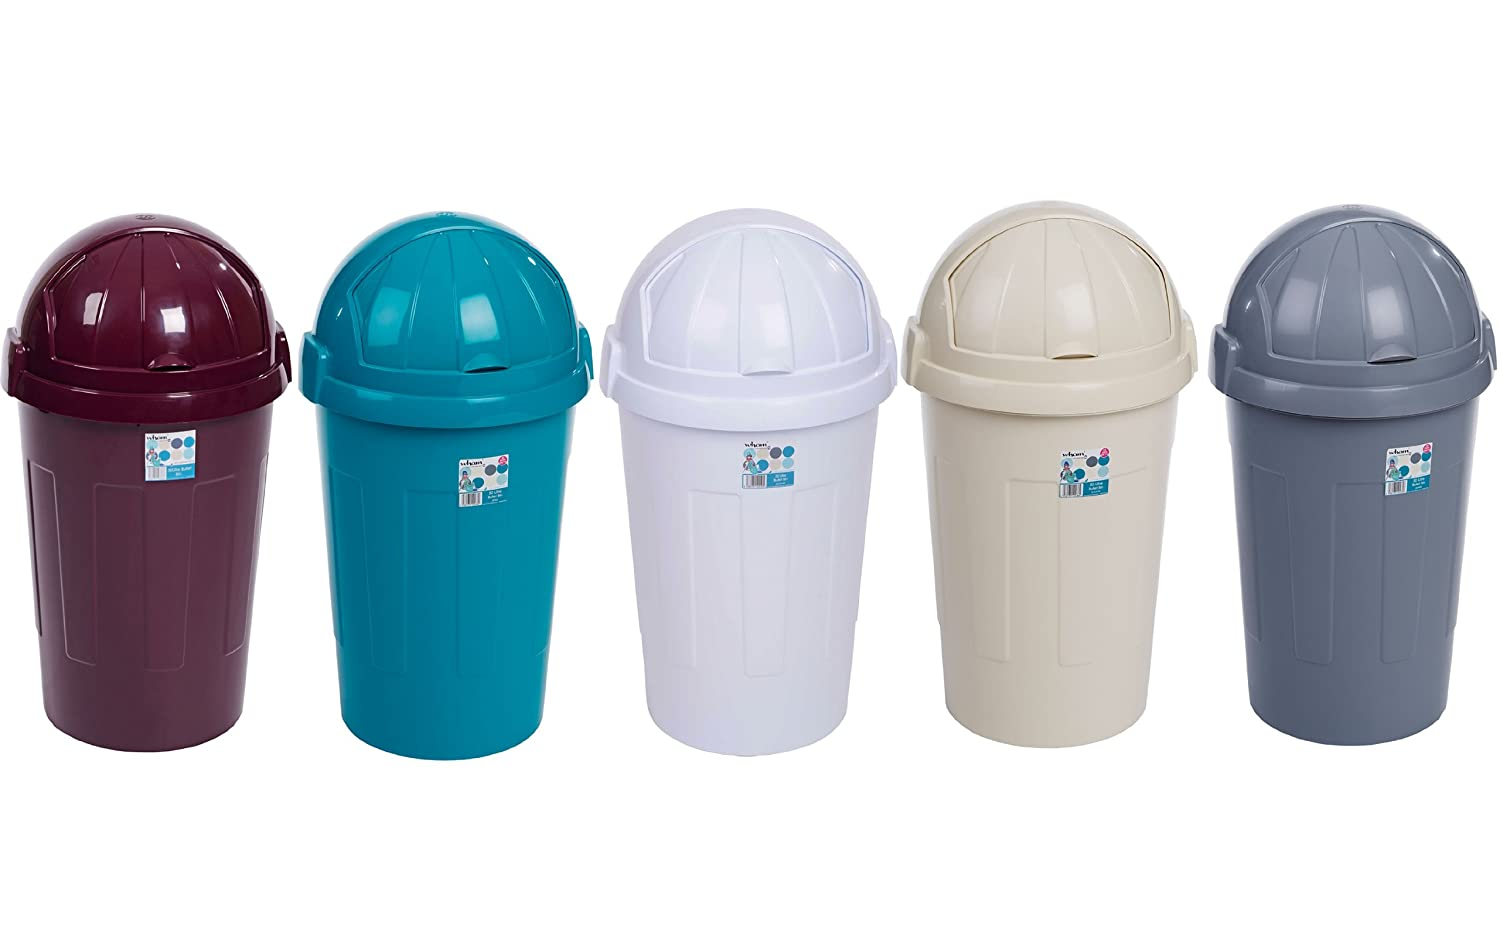 50 Litre Plastic Bullet Bin Calico / Cream - Kitchen / Office Bin ...